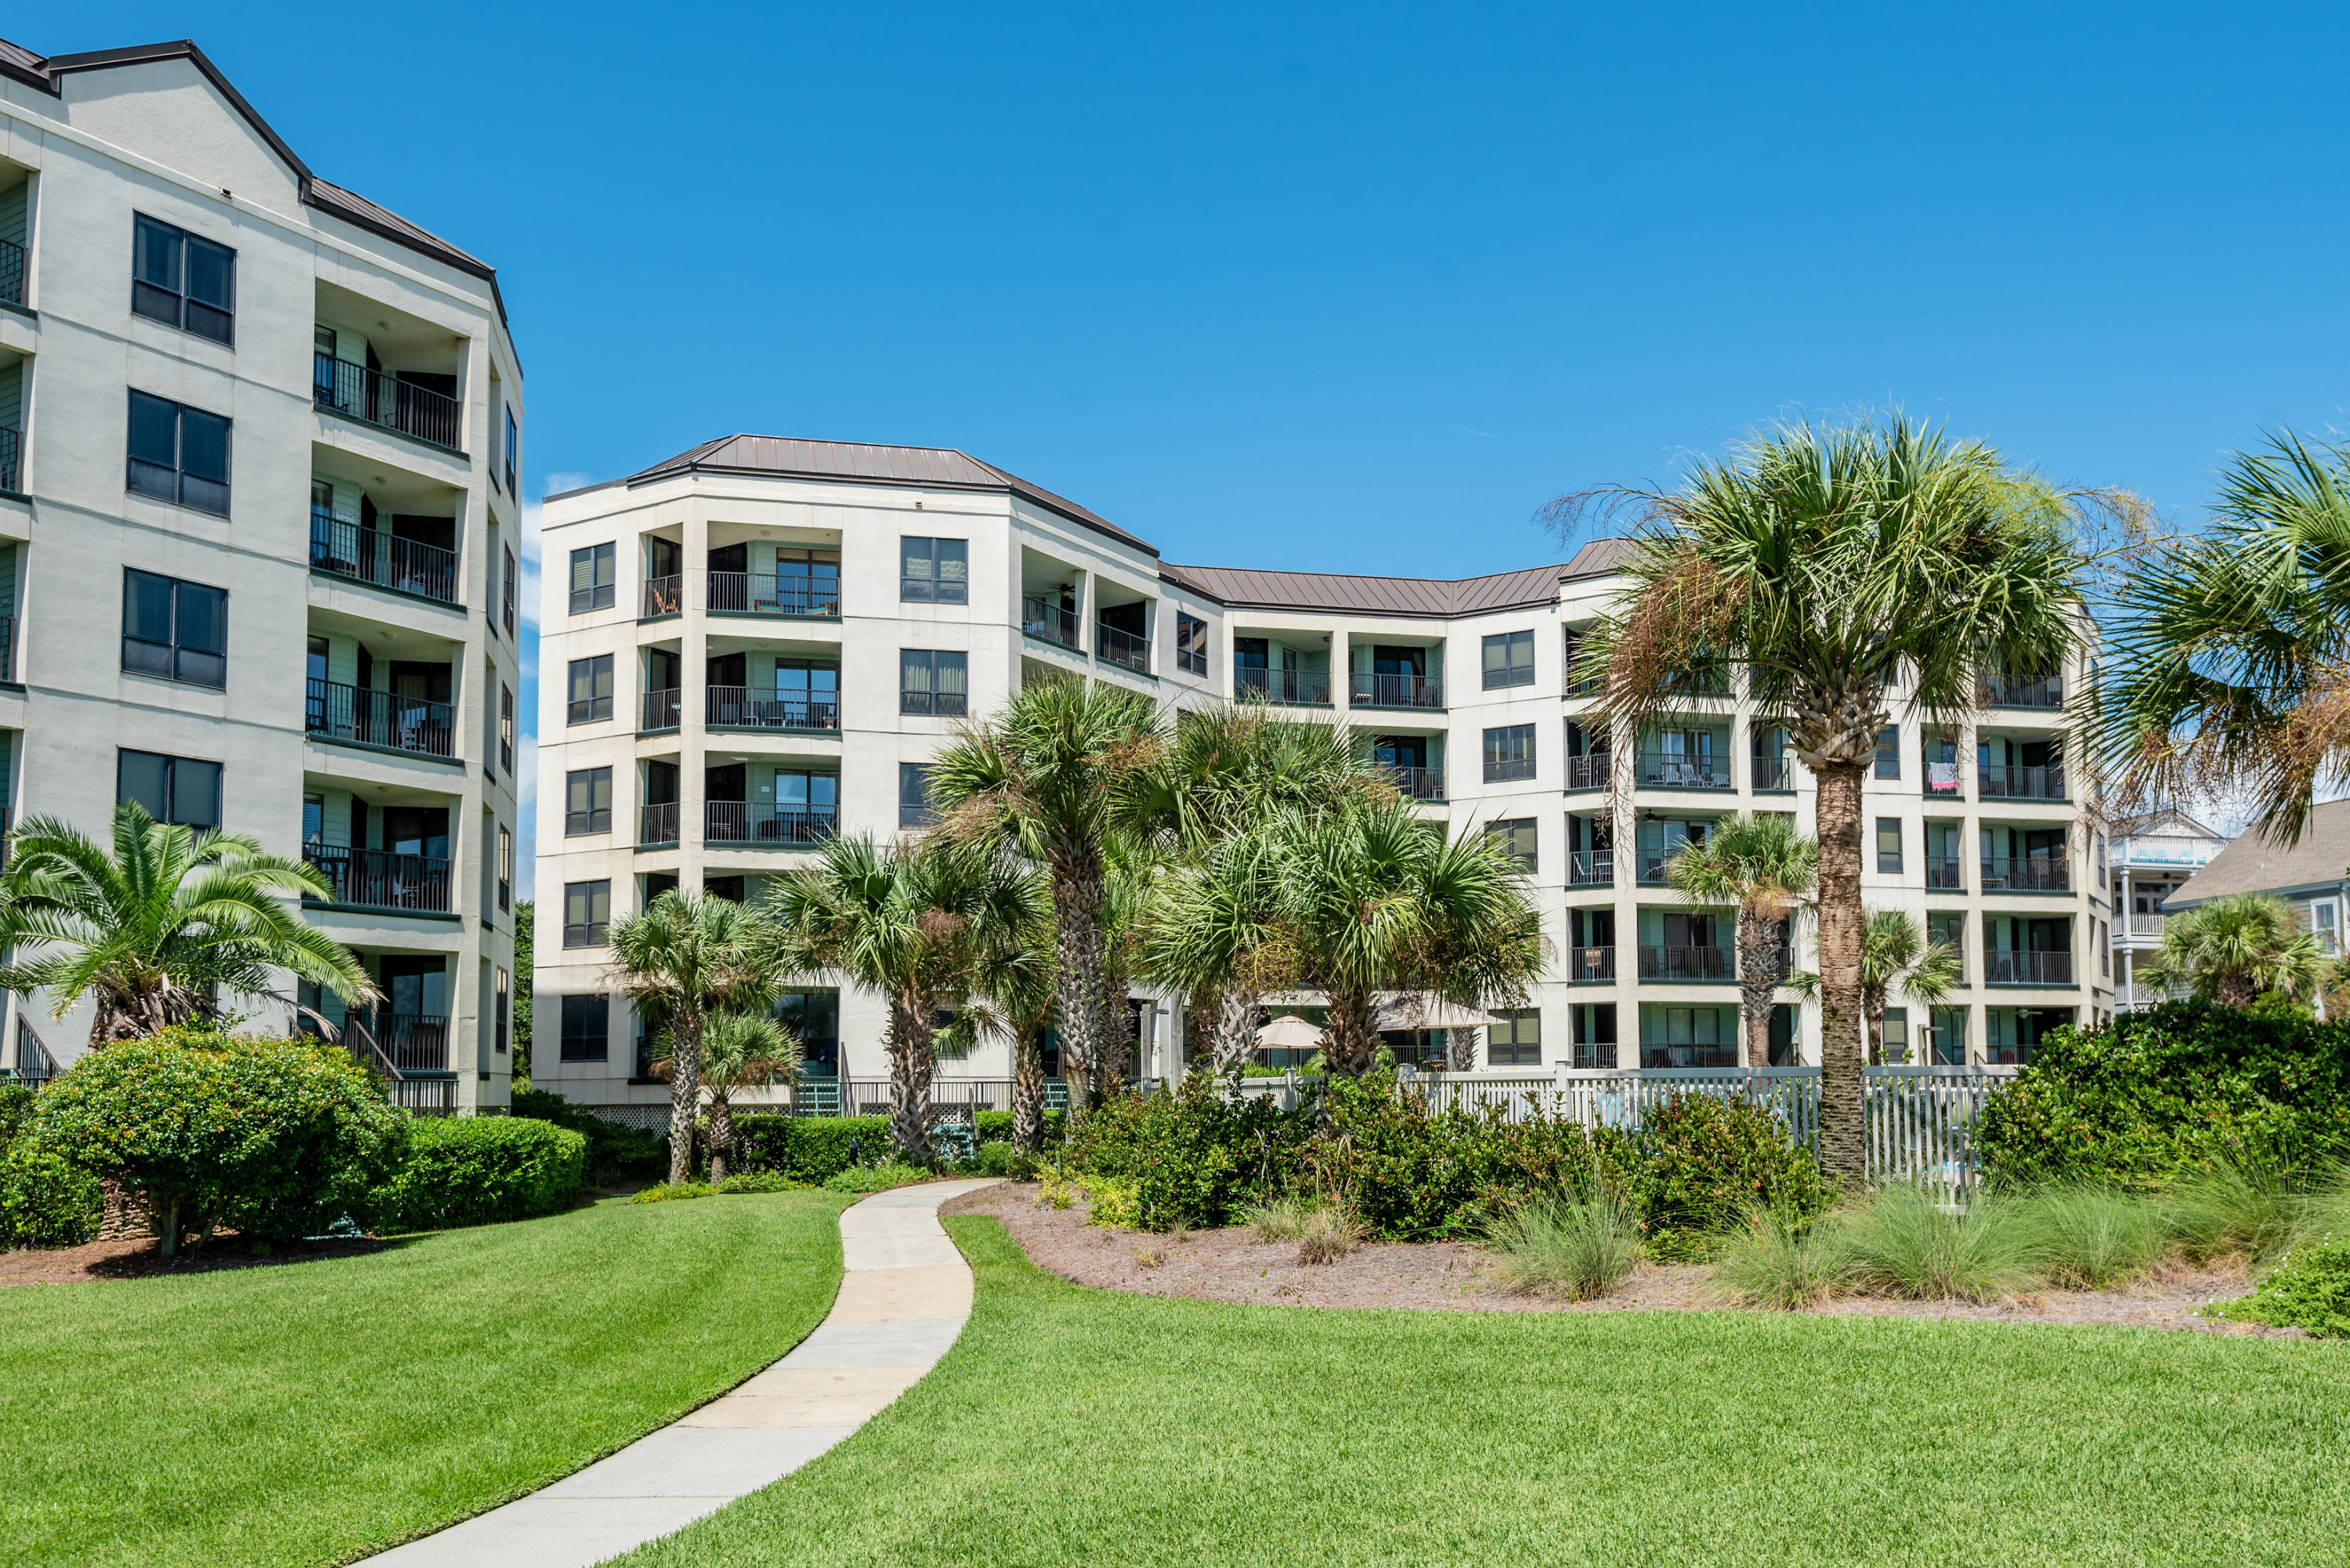 Summer House Homes For Sale - 308 Summerhouse, Isle of Palms, SC - 23